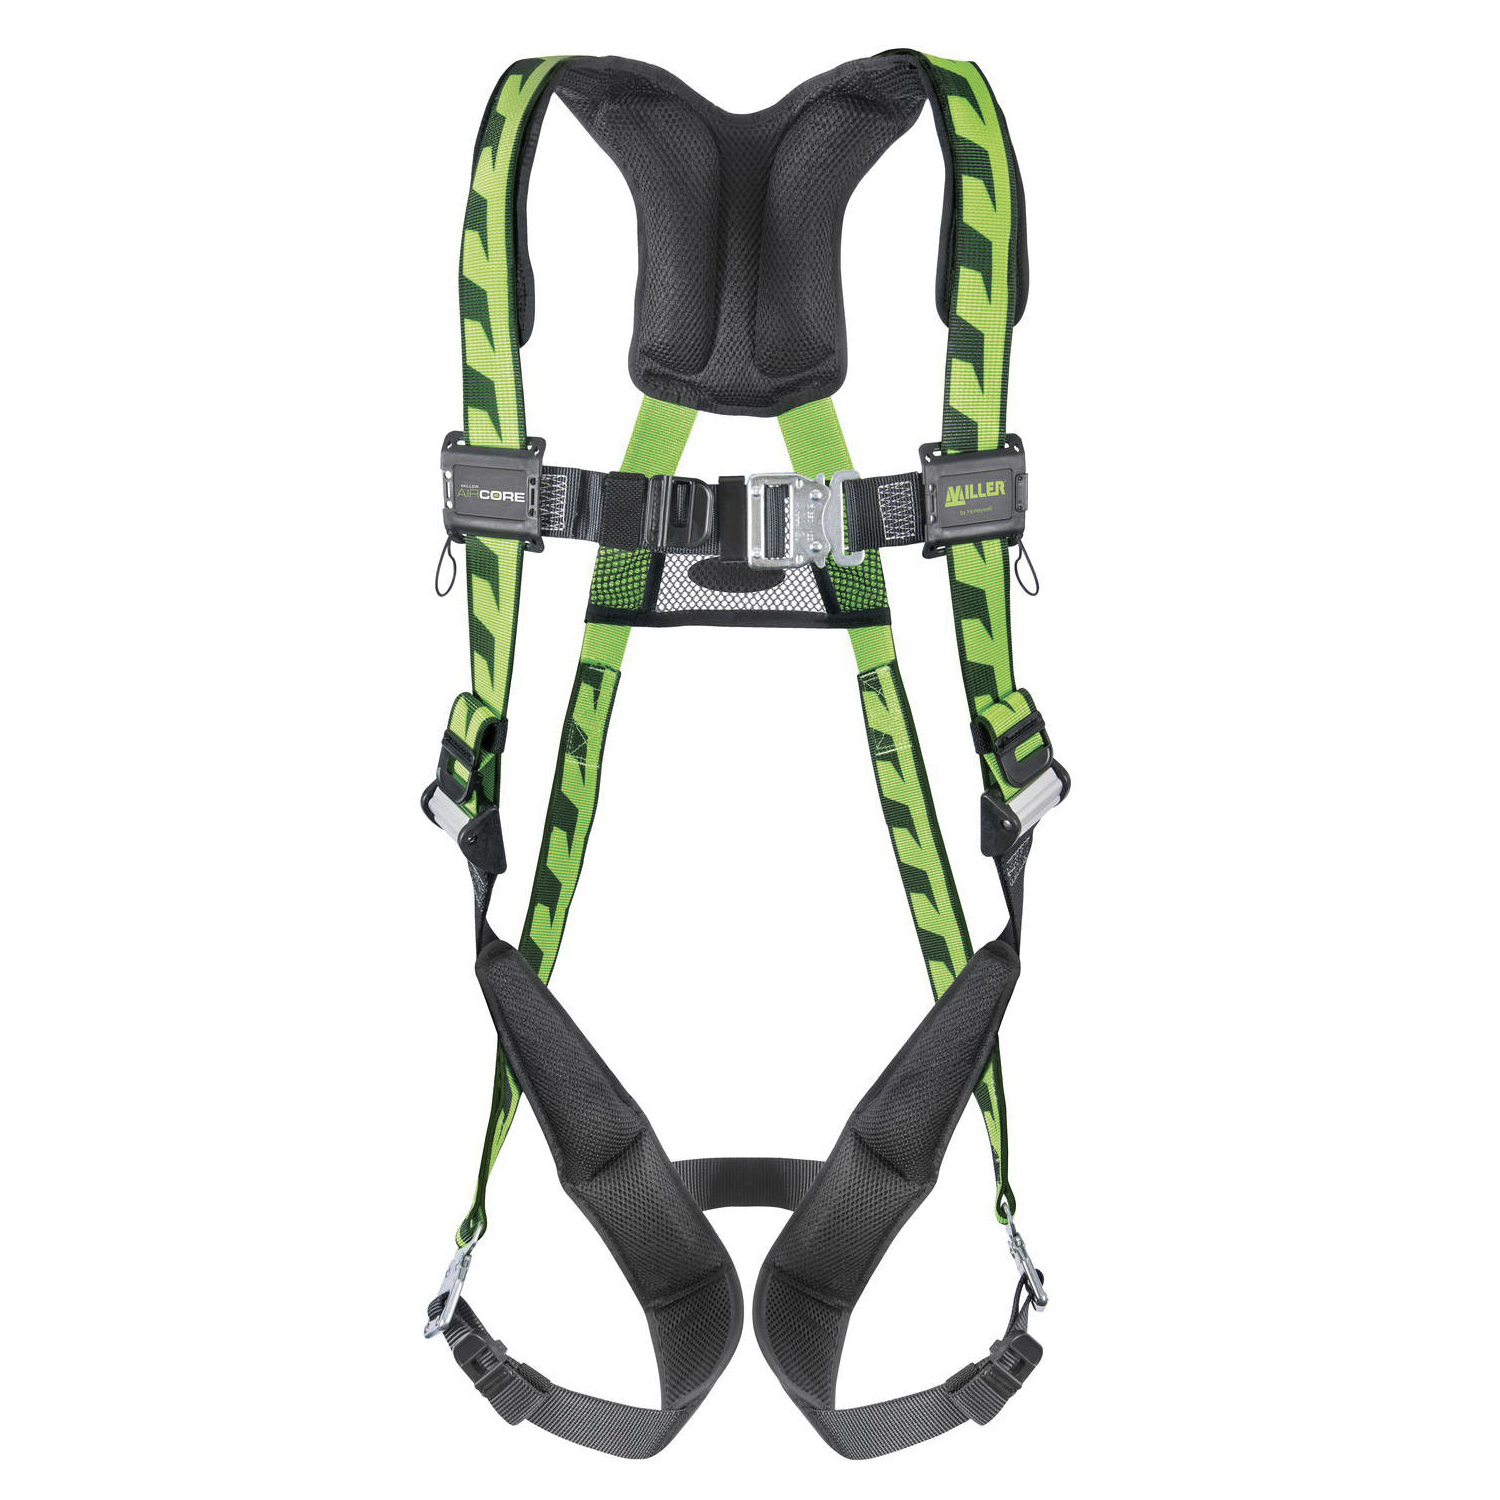 Miller® by Honeywell AirCore™ AC-QC2/3XLGN Harness, 2XL/3XL, 400 lb Load, Polyester Strap, Quick-Connect Leg Strap Buckle, Quick-Connect Chest Strap Buckle, Carbon Steel Hardware, Green